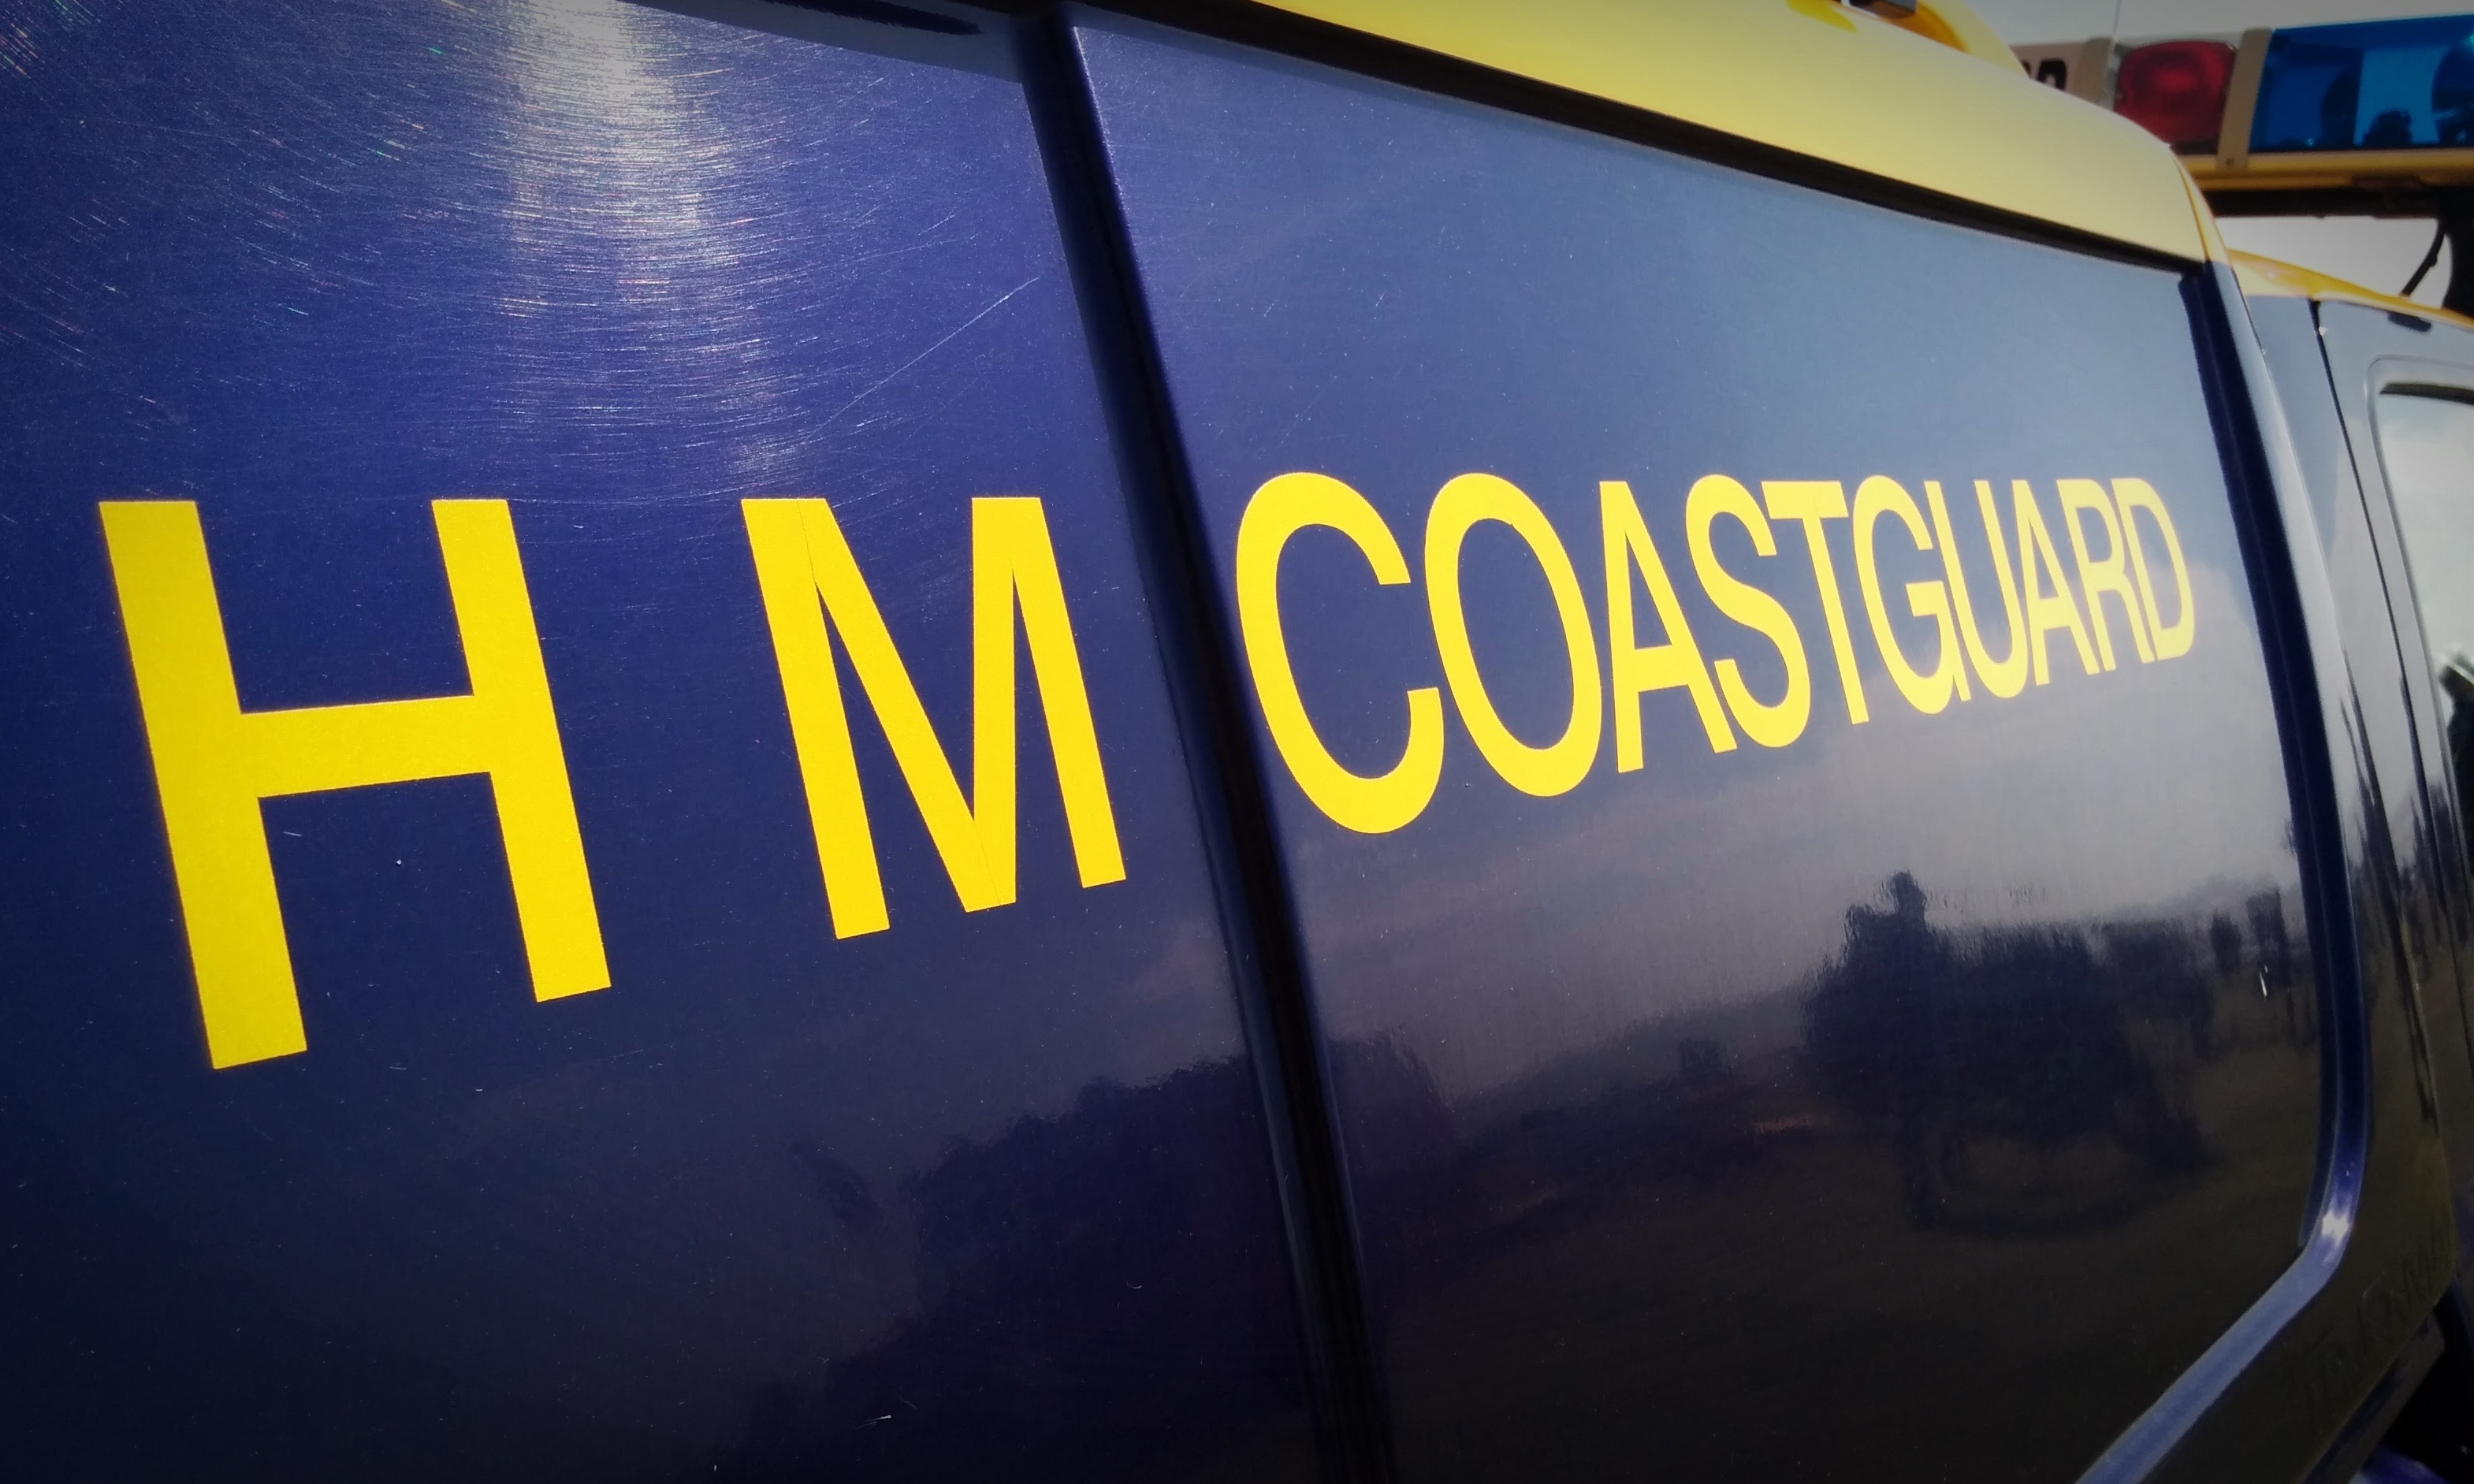 HM Coastguard were called